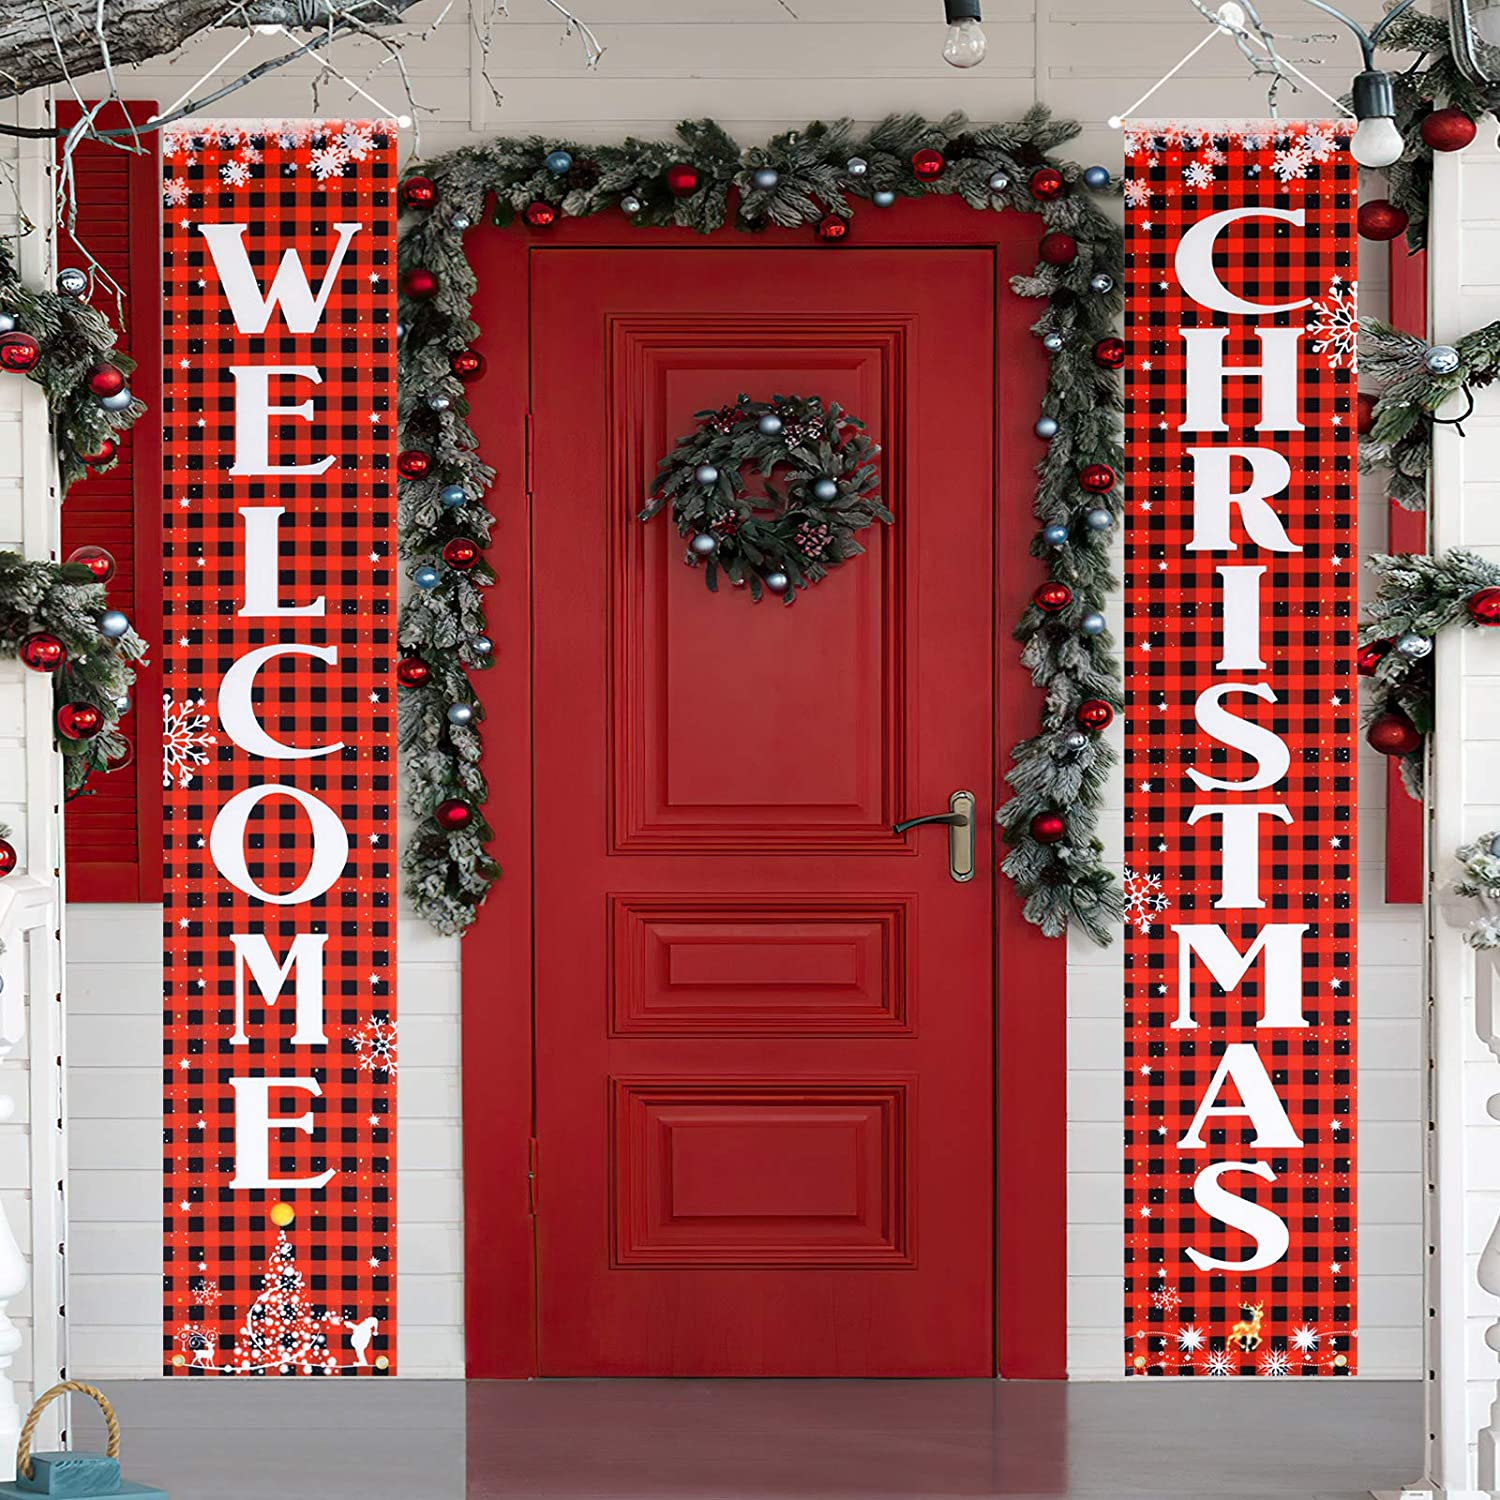 KRISVI Christmas Porch Decorations for Home Merry Christmas Banner,Welcome Christmas Porch Signs Banners for Front Door Christmas Decoration Outdoor Flags Christmas Signs Hanging Decorations